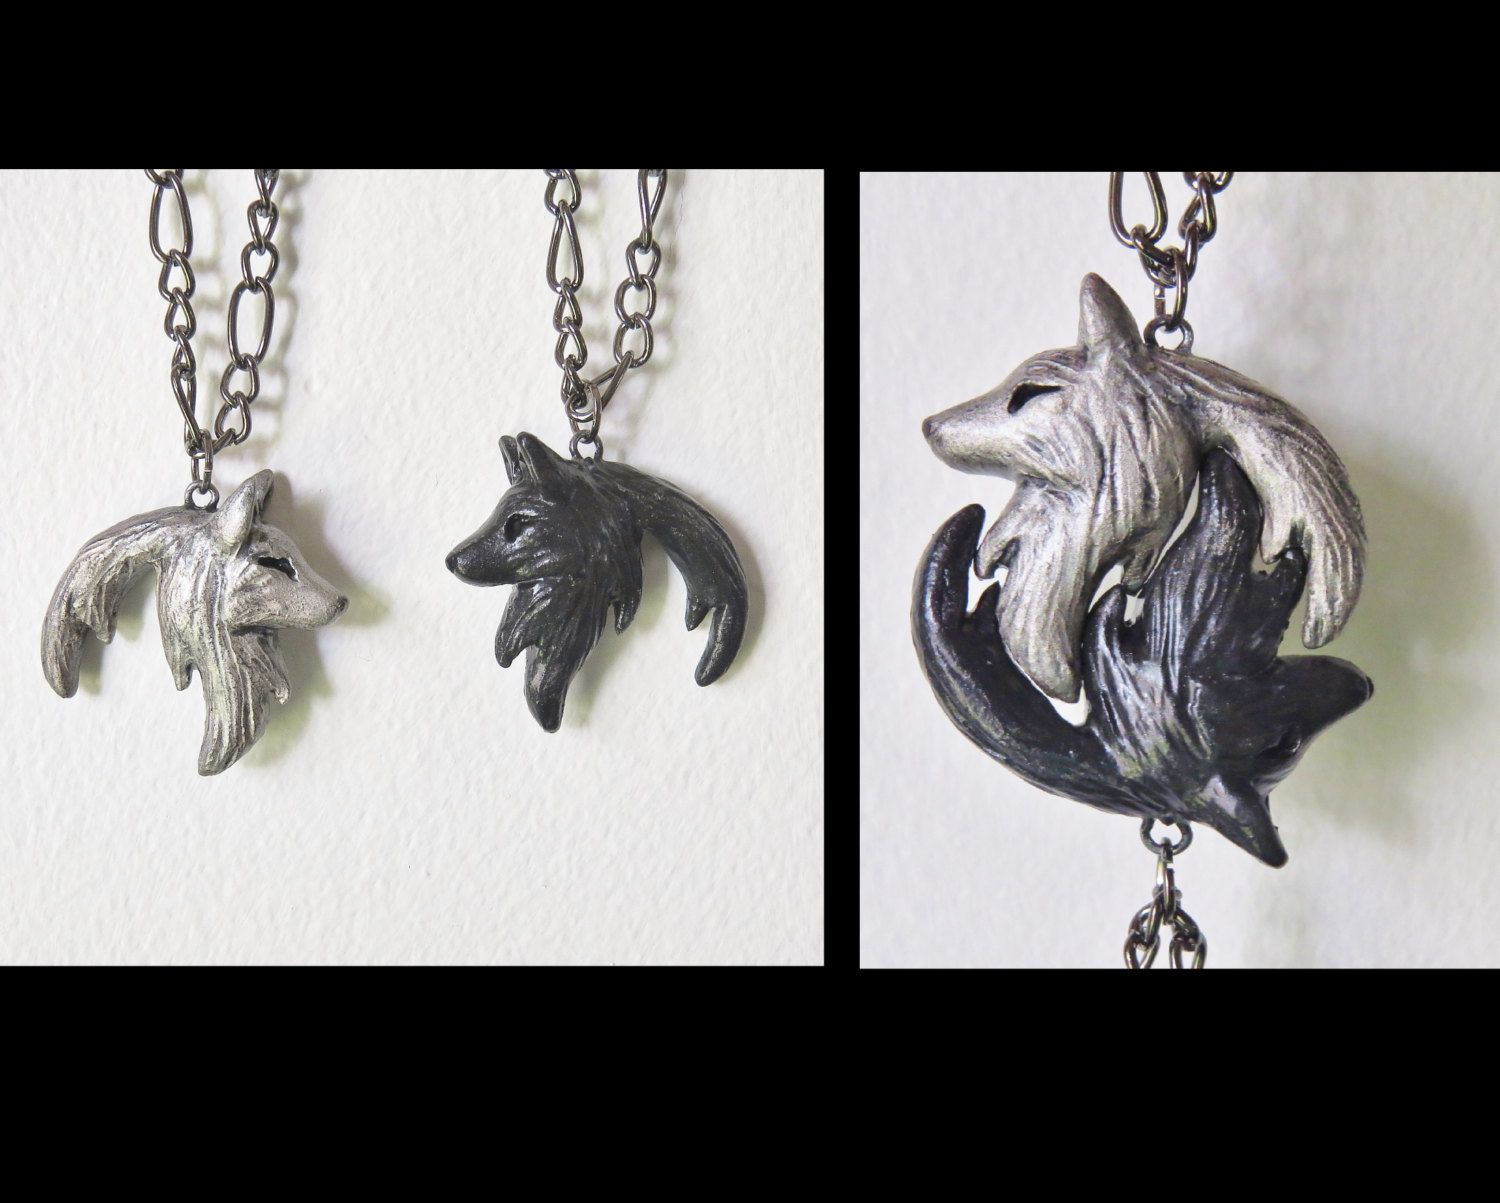 8513843a40 Wolf Yin Yang Necklace His and Hers Interlocking Couple by wcgoods on Etsy  https:/